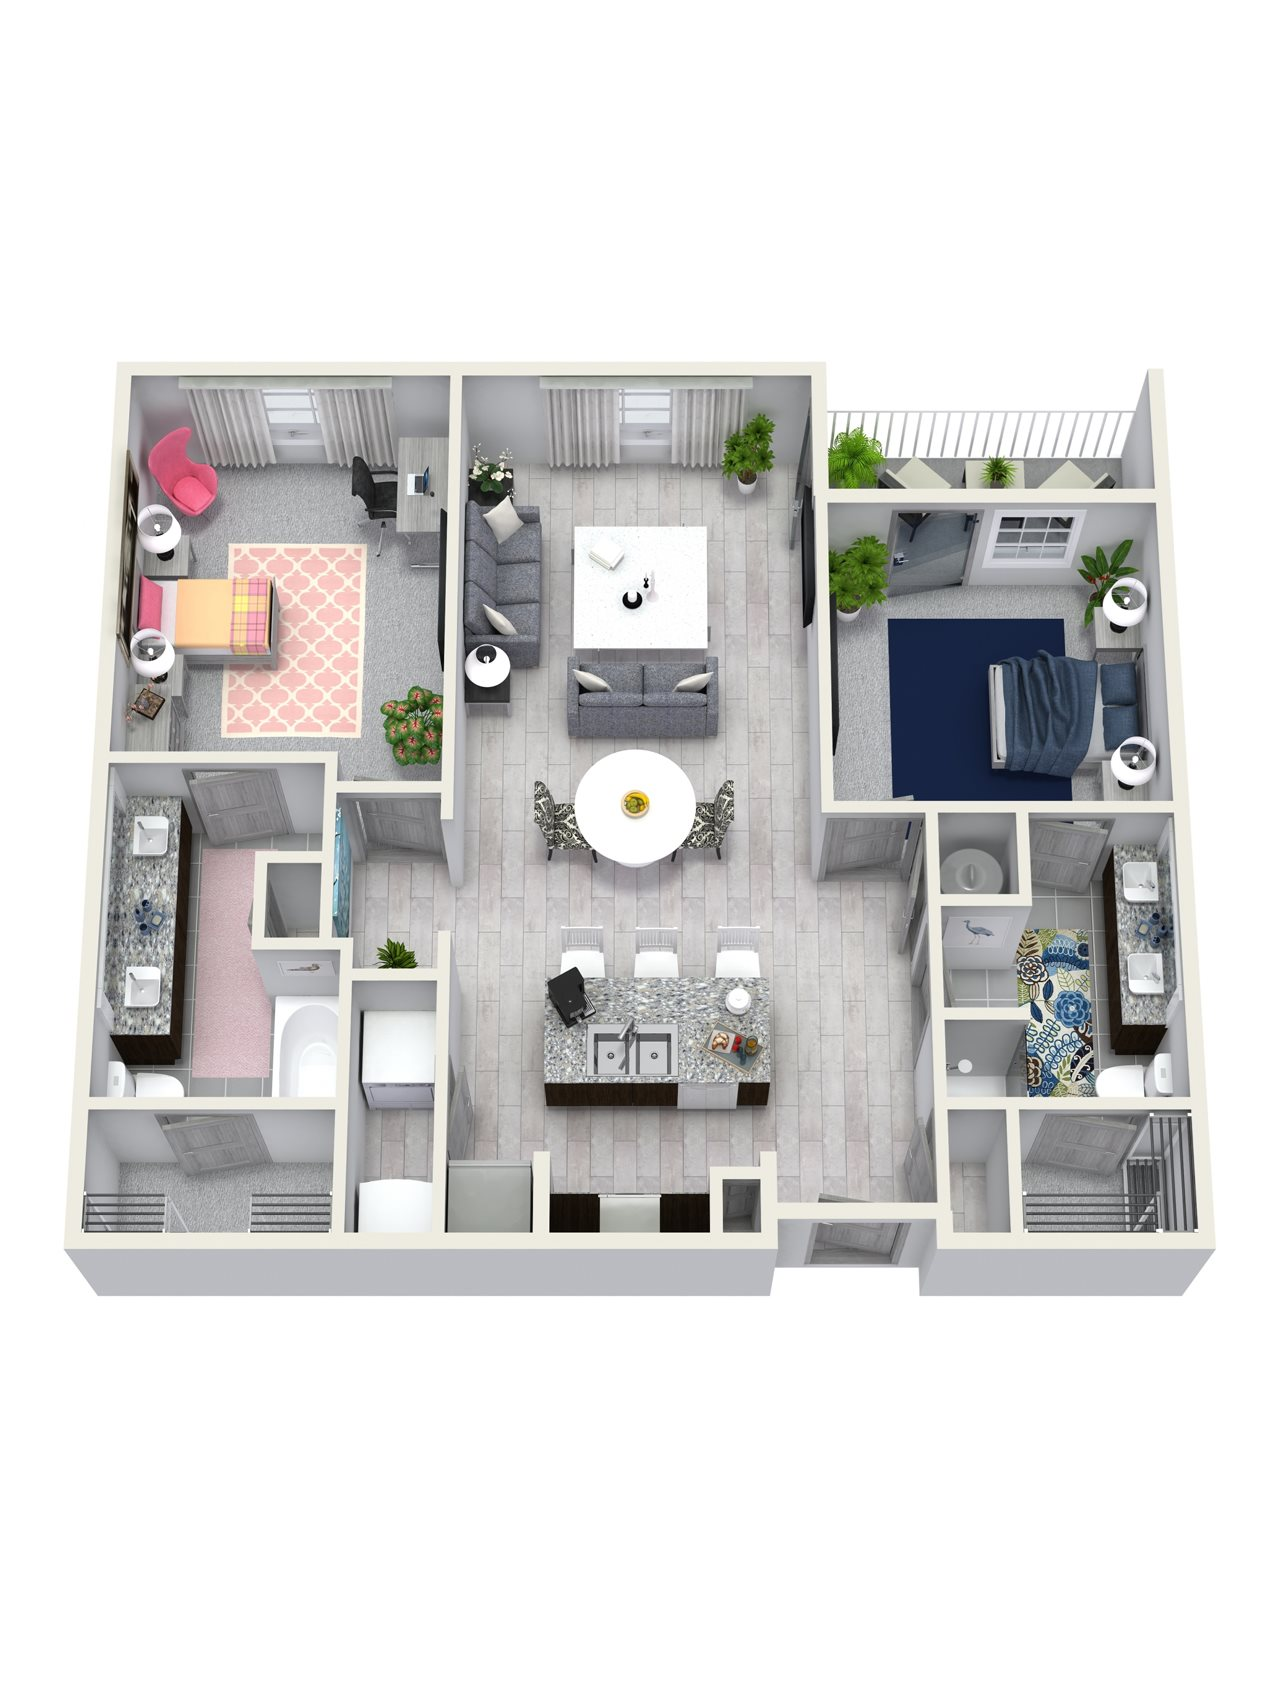 2 Bedroom 2 Bath 1117 sqft B5 Floor Plan 12